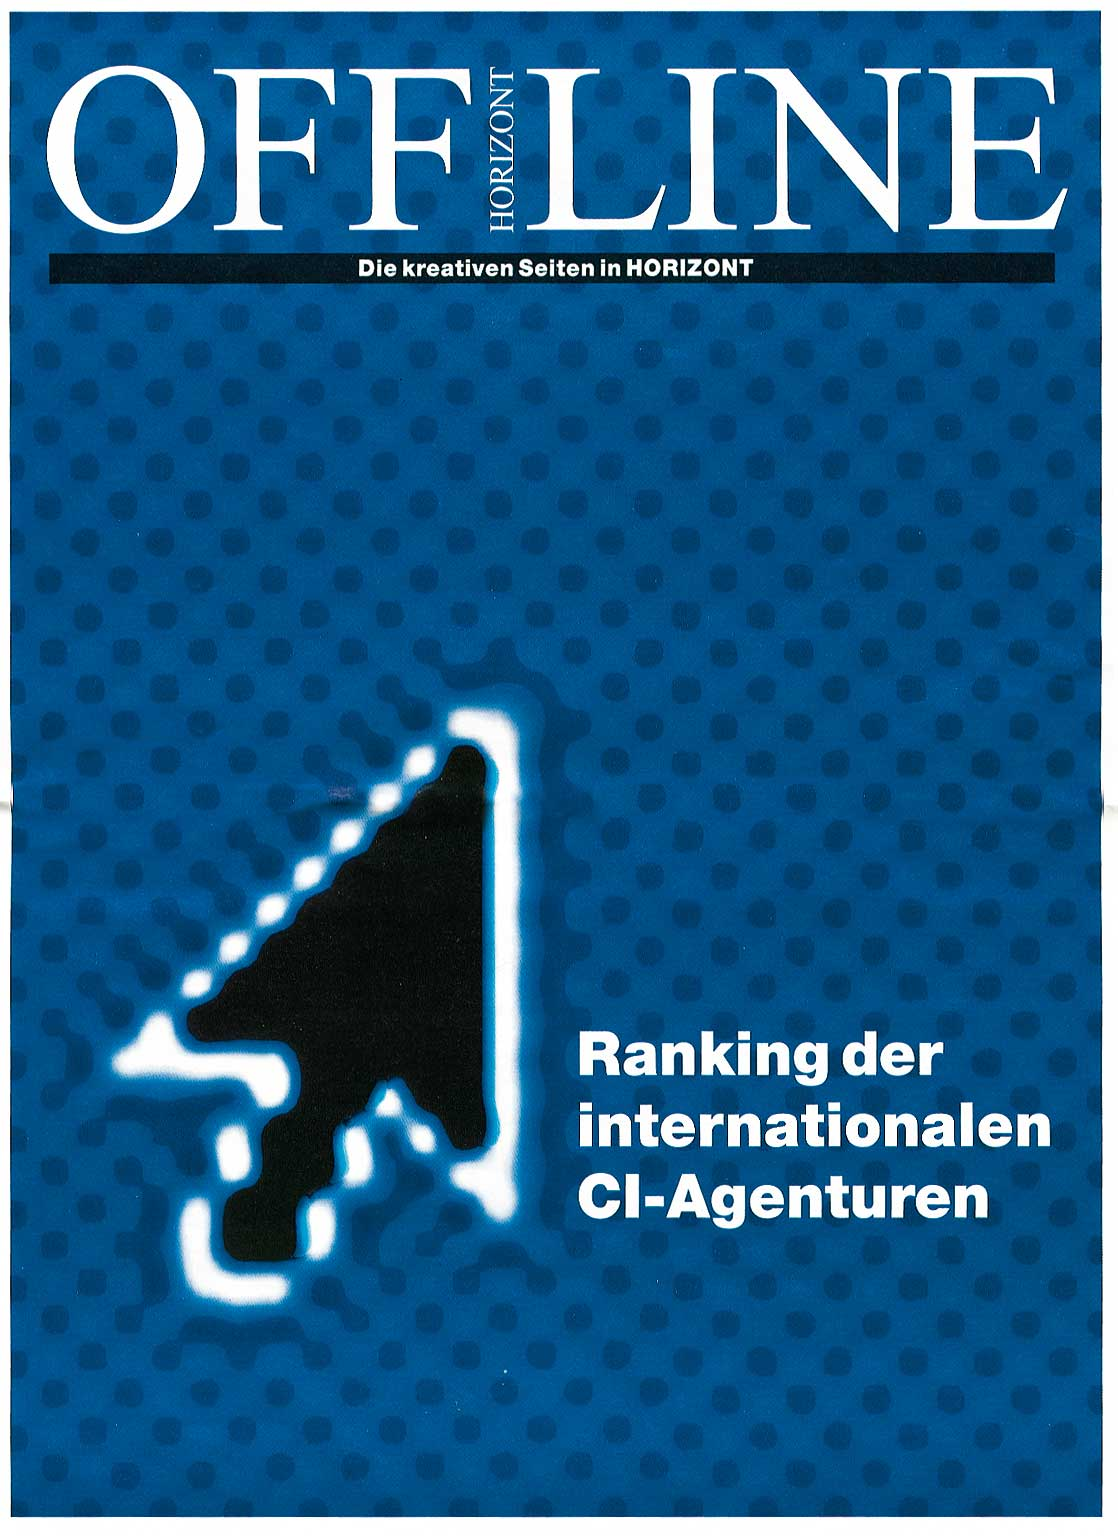 Ranking der internationalen CI-Agenturen